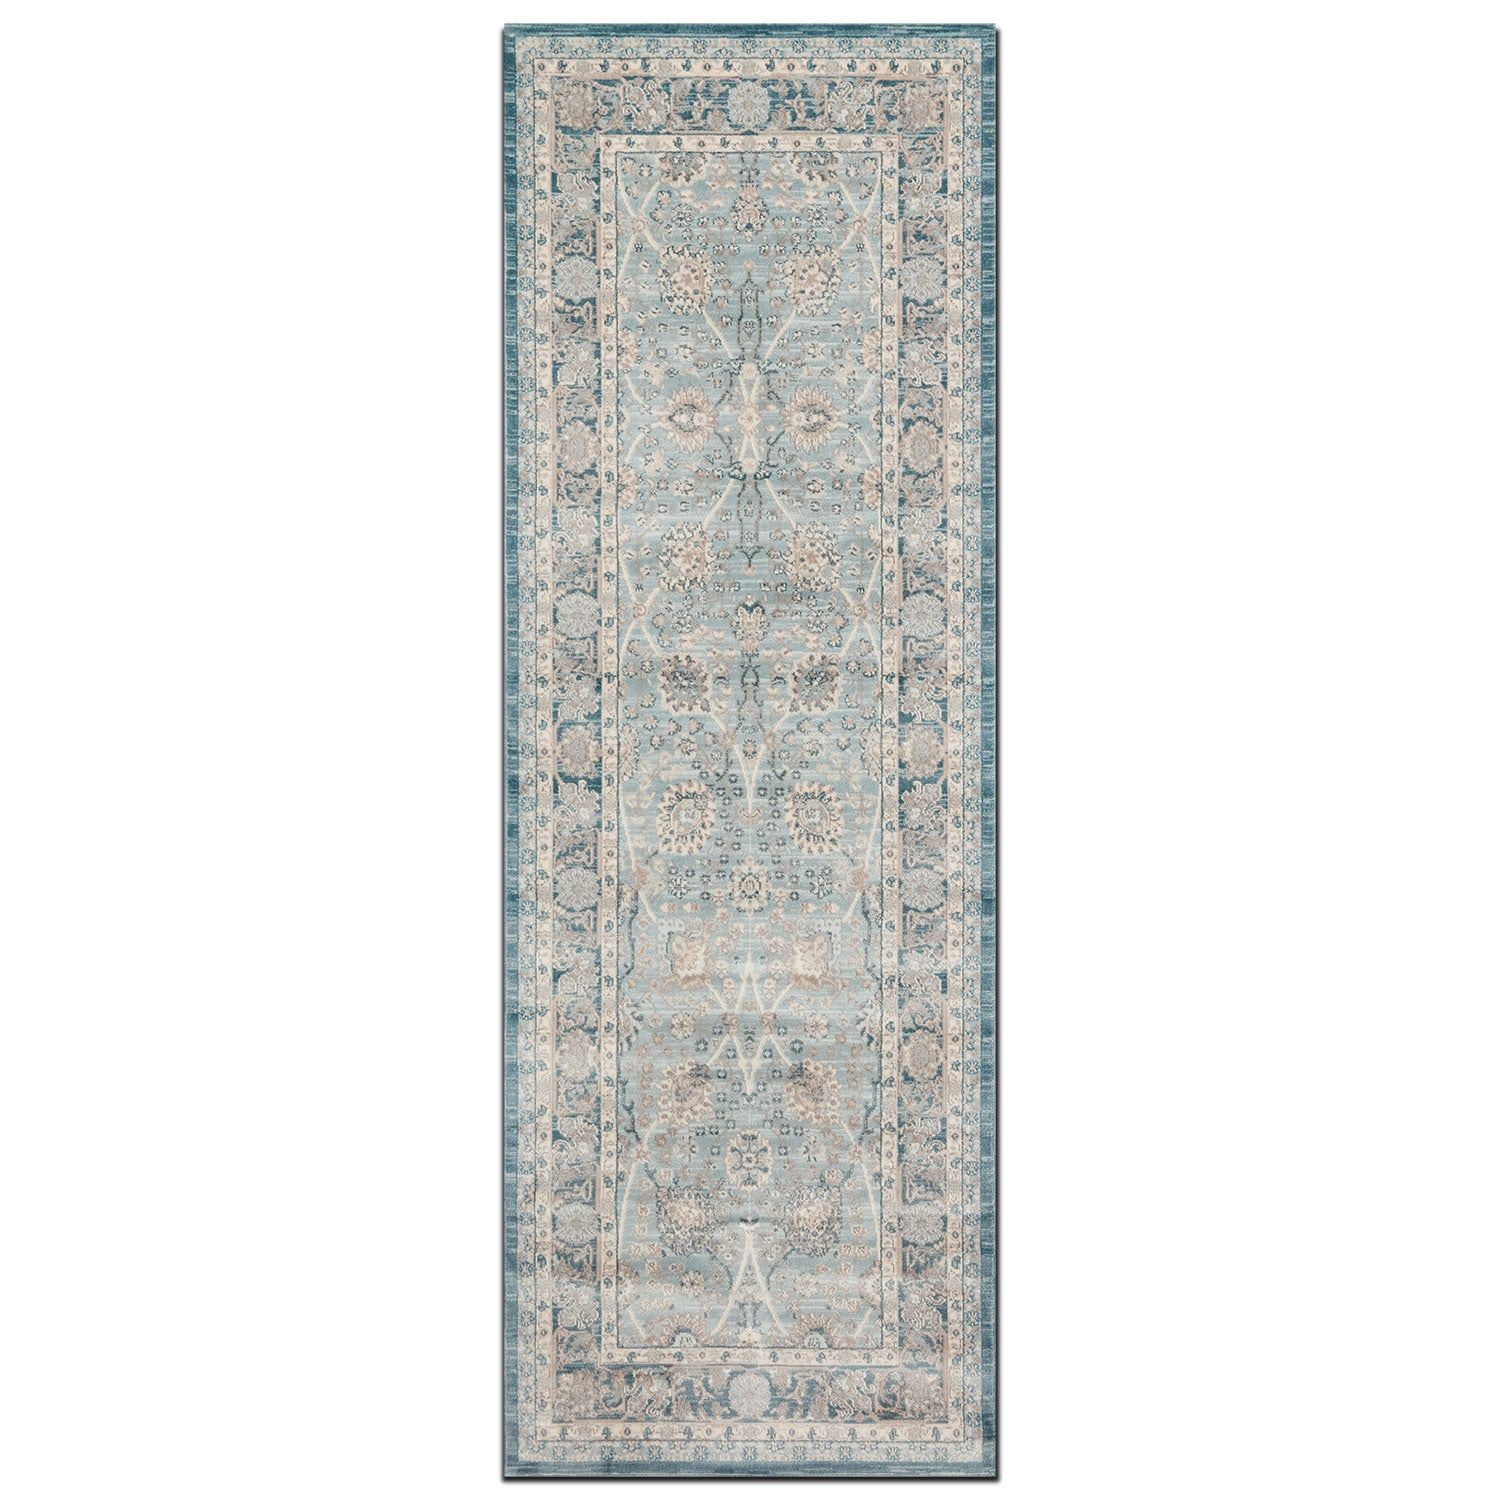 Rugs - Ella Rose 3' x 8' Rug - Light and Dark Blue